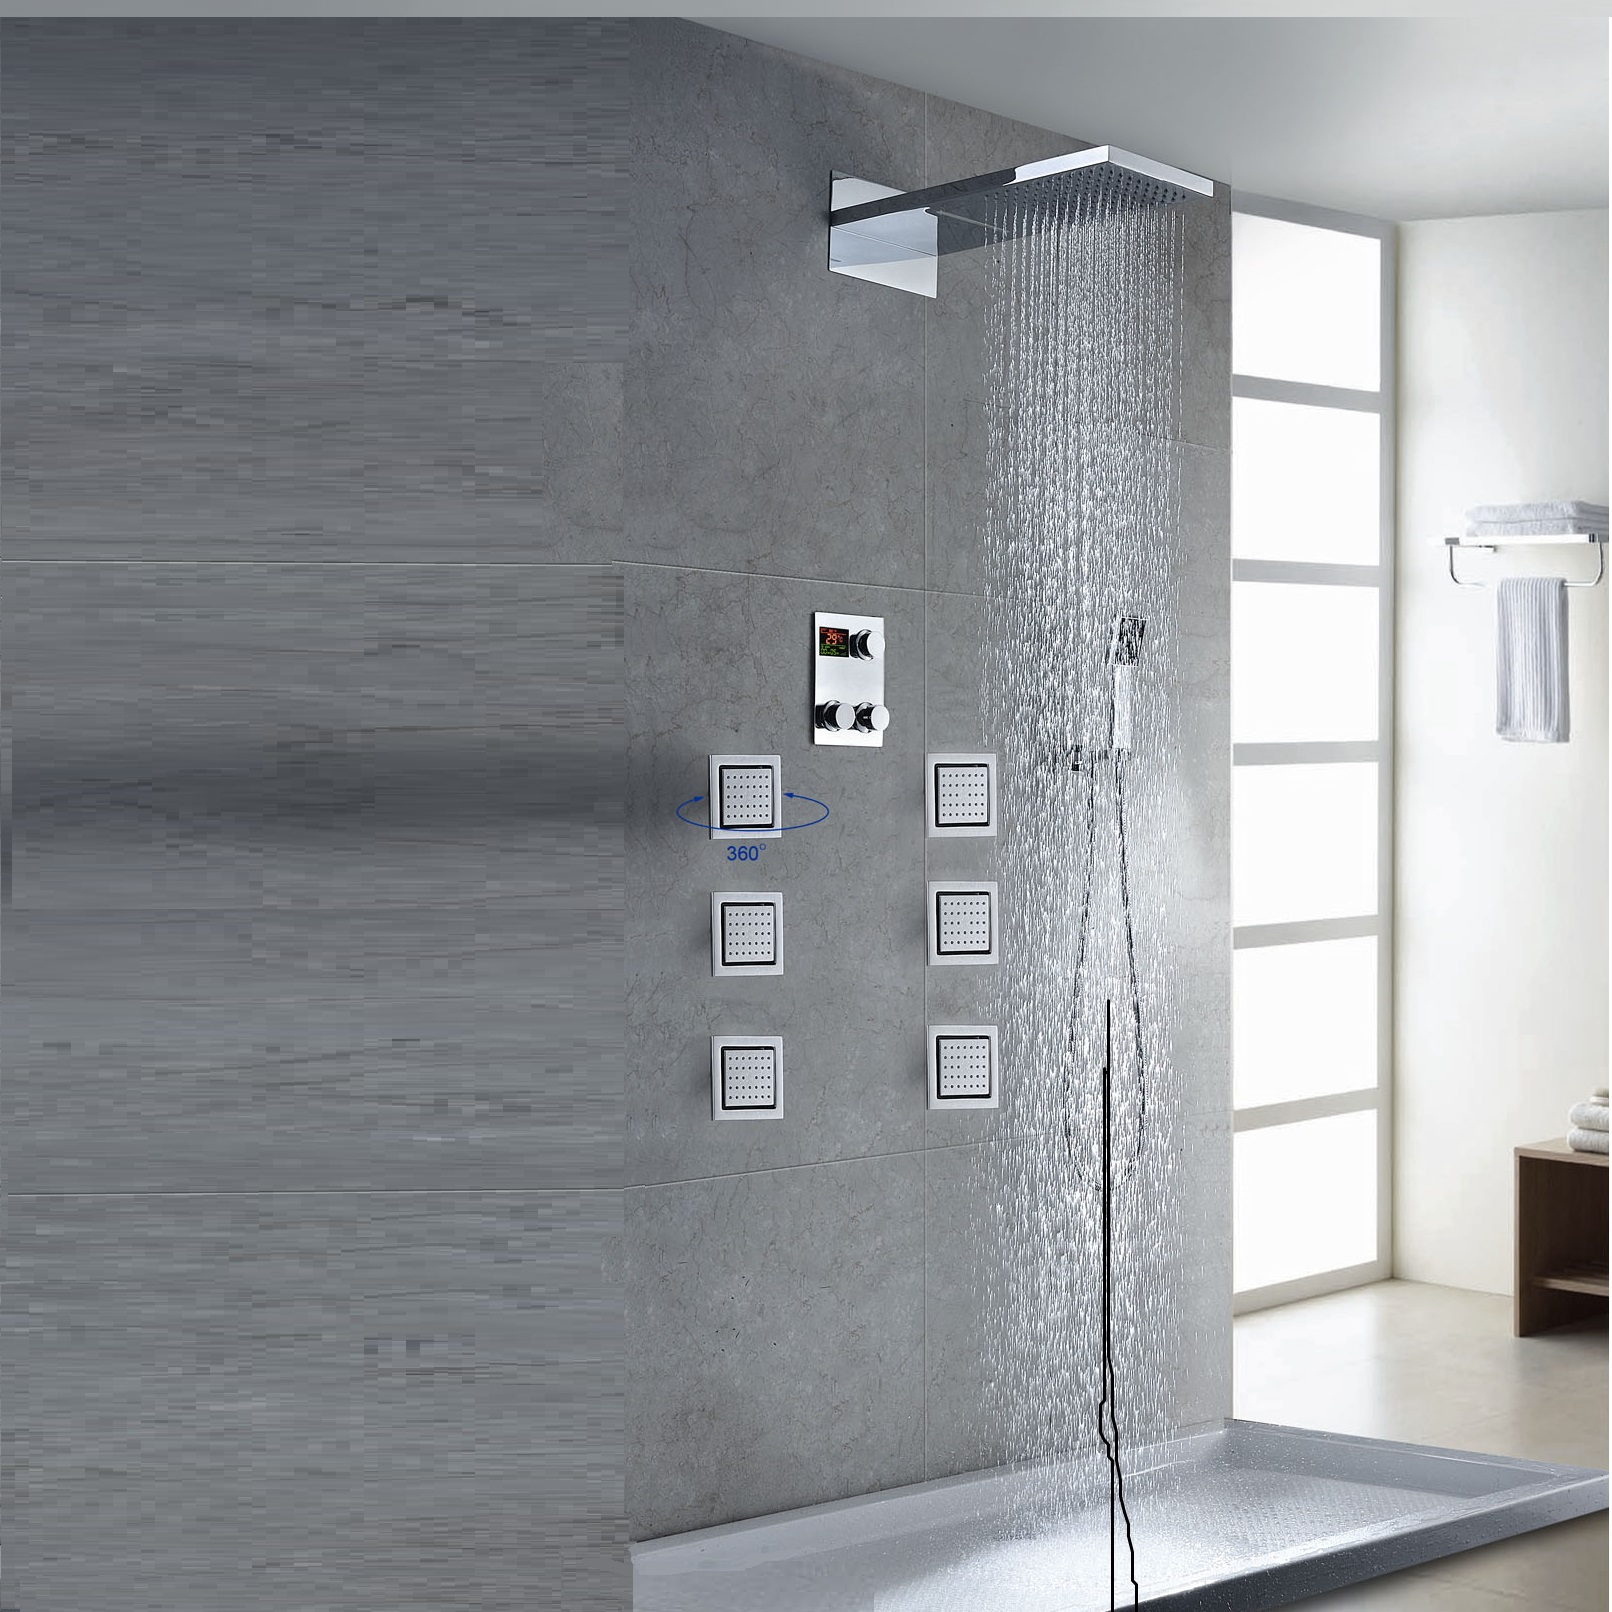 Ultra Shower Set ZBD Digital - Designed